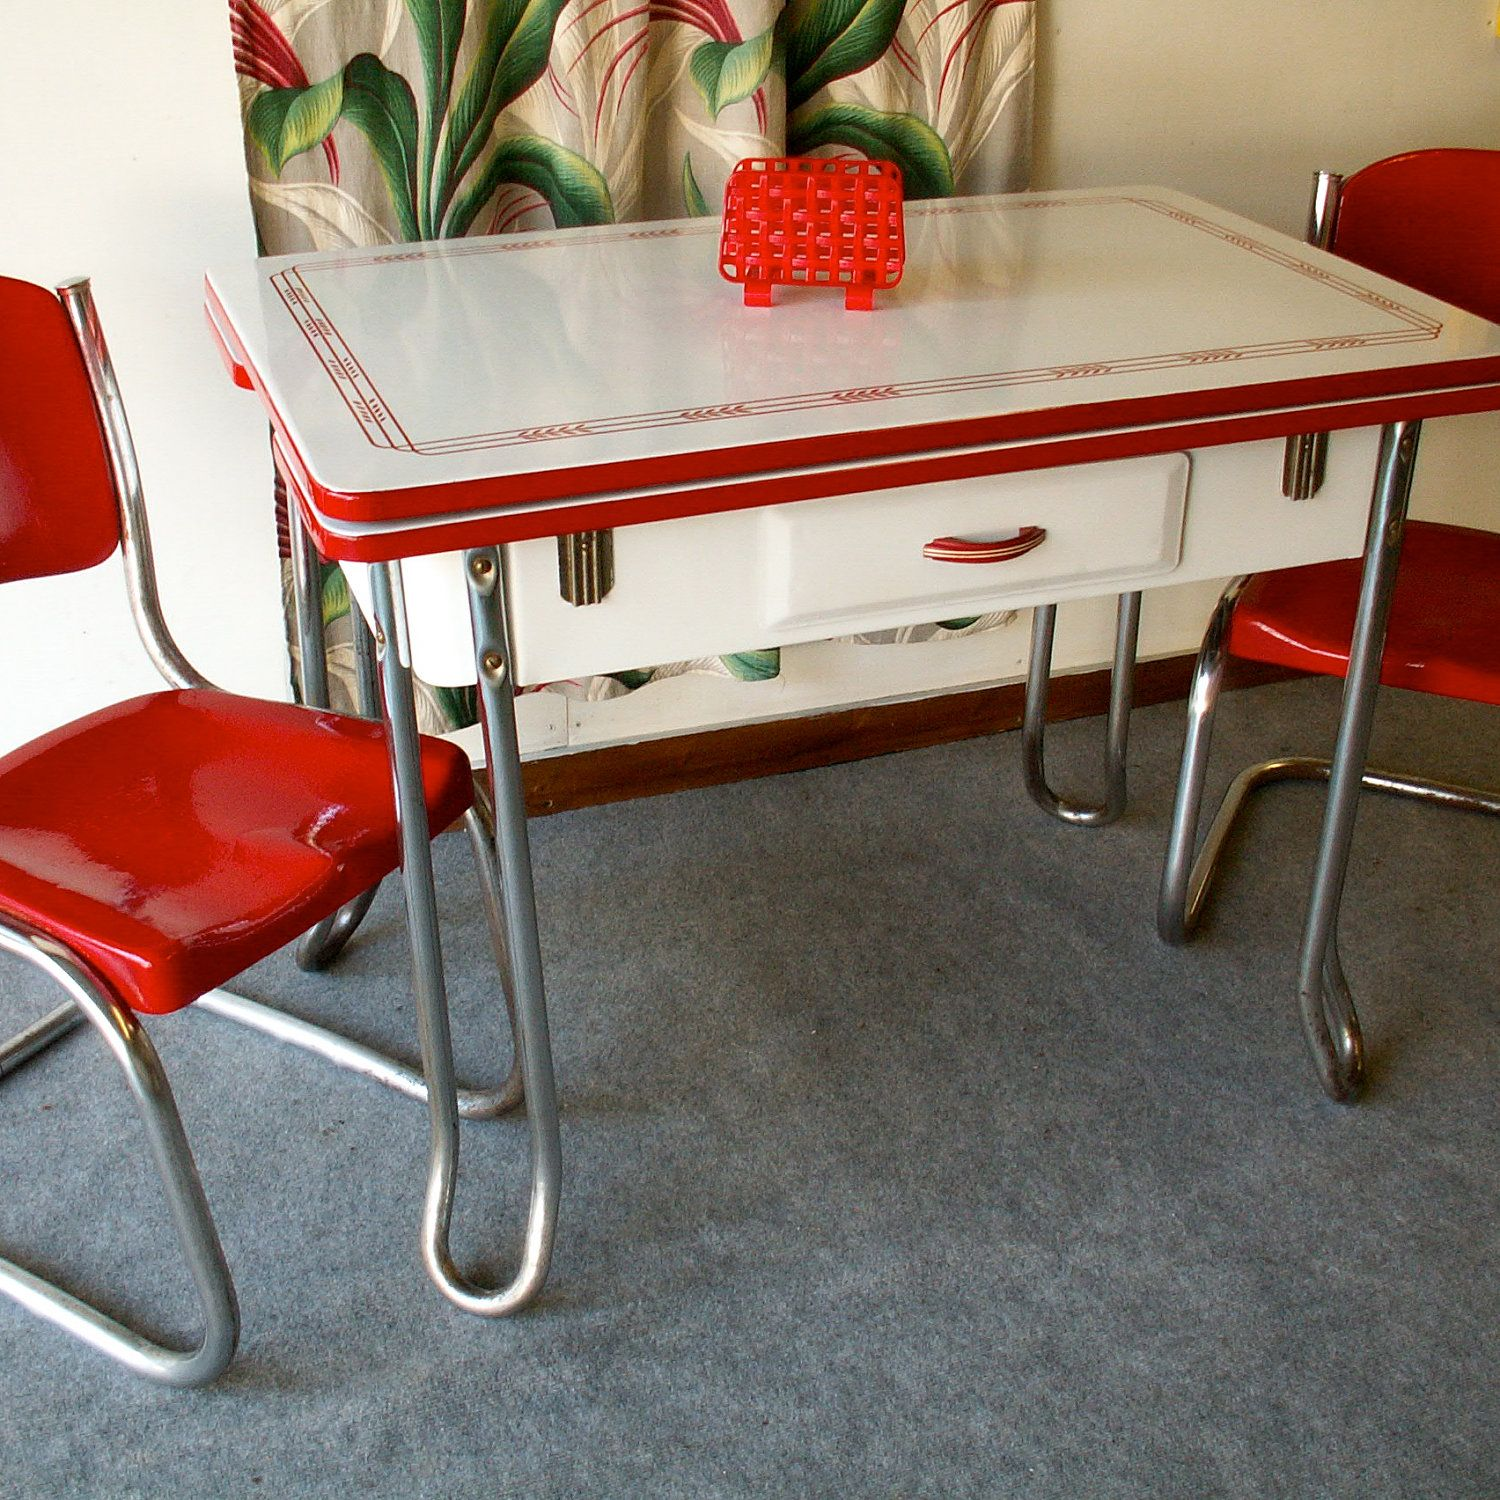 Vintage Red And White Porcelain Table By